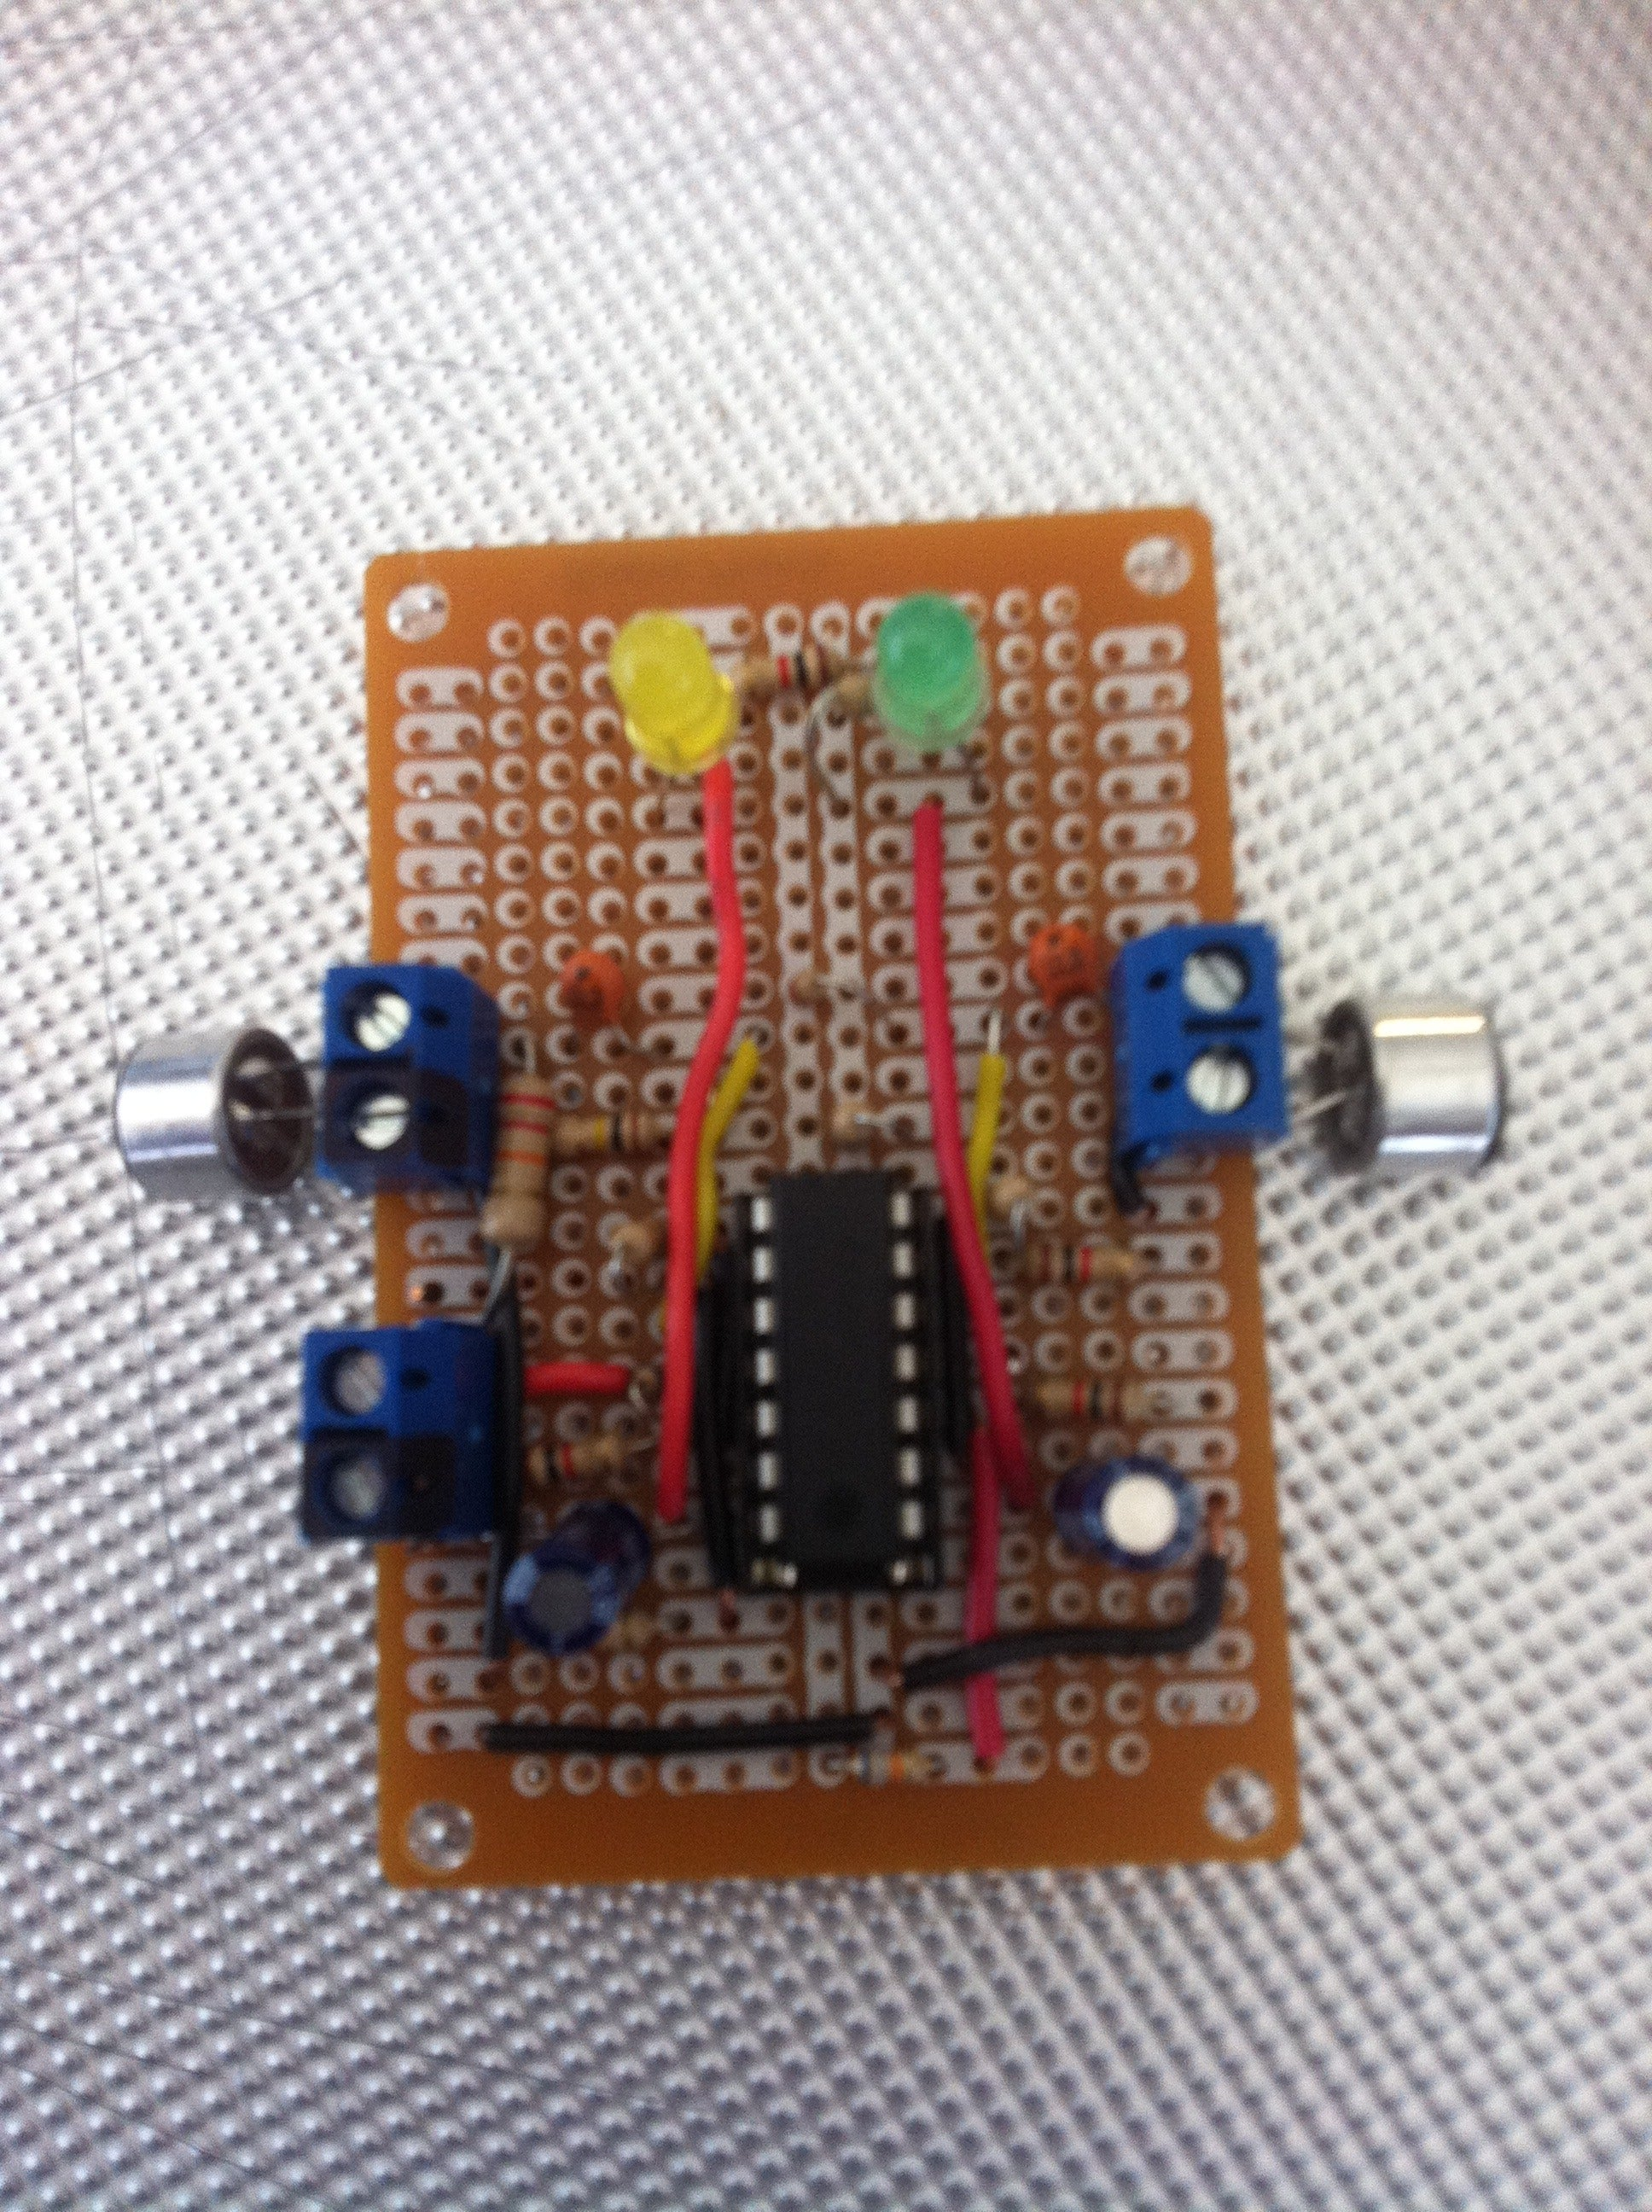 Sound Sensor Using A Lm324 4 Steps Electret Microphone Circuit As Well Arduino